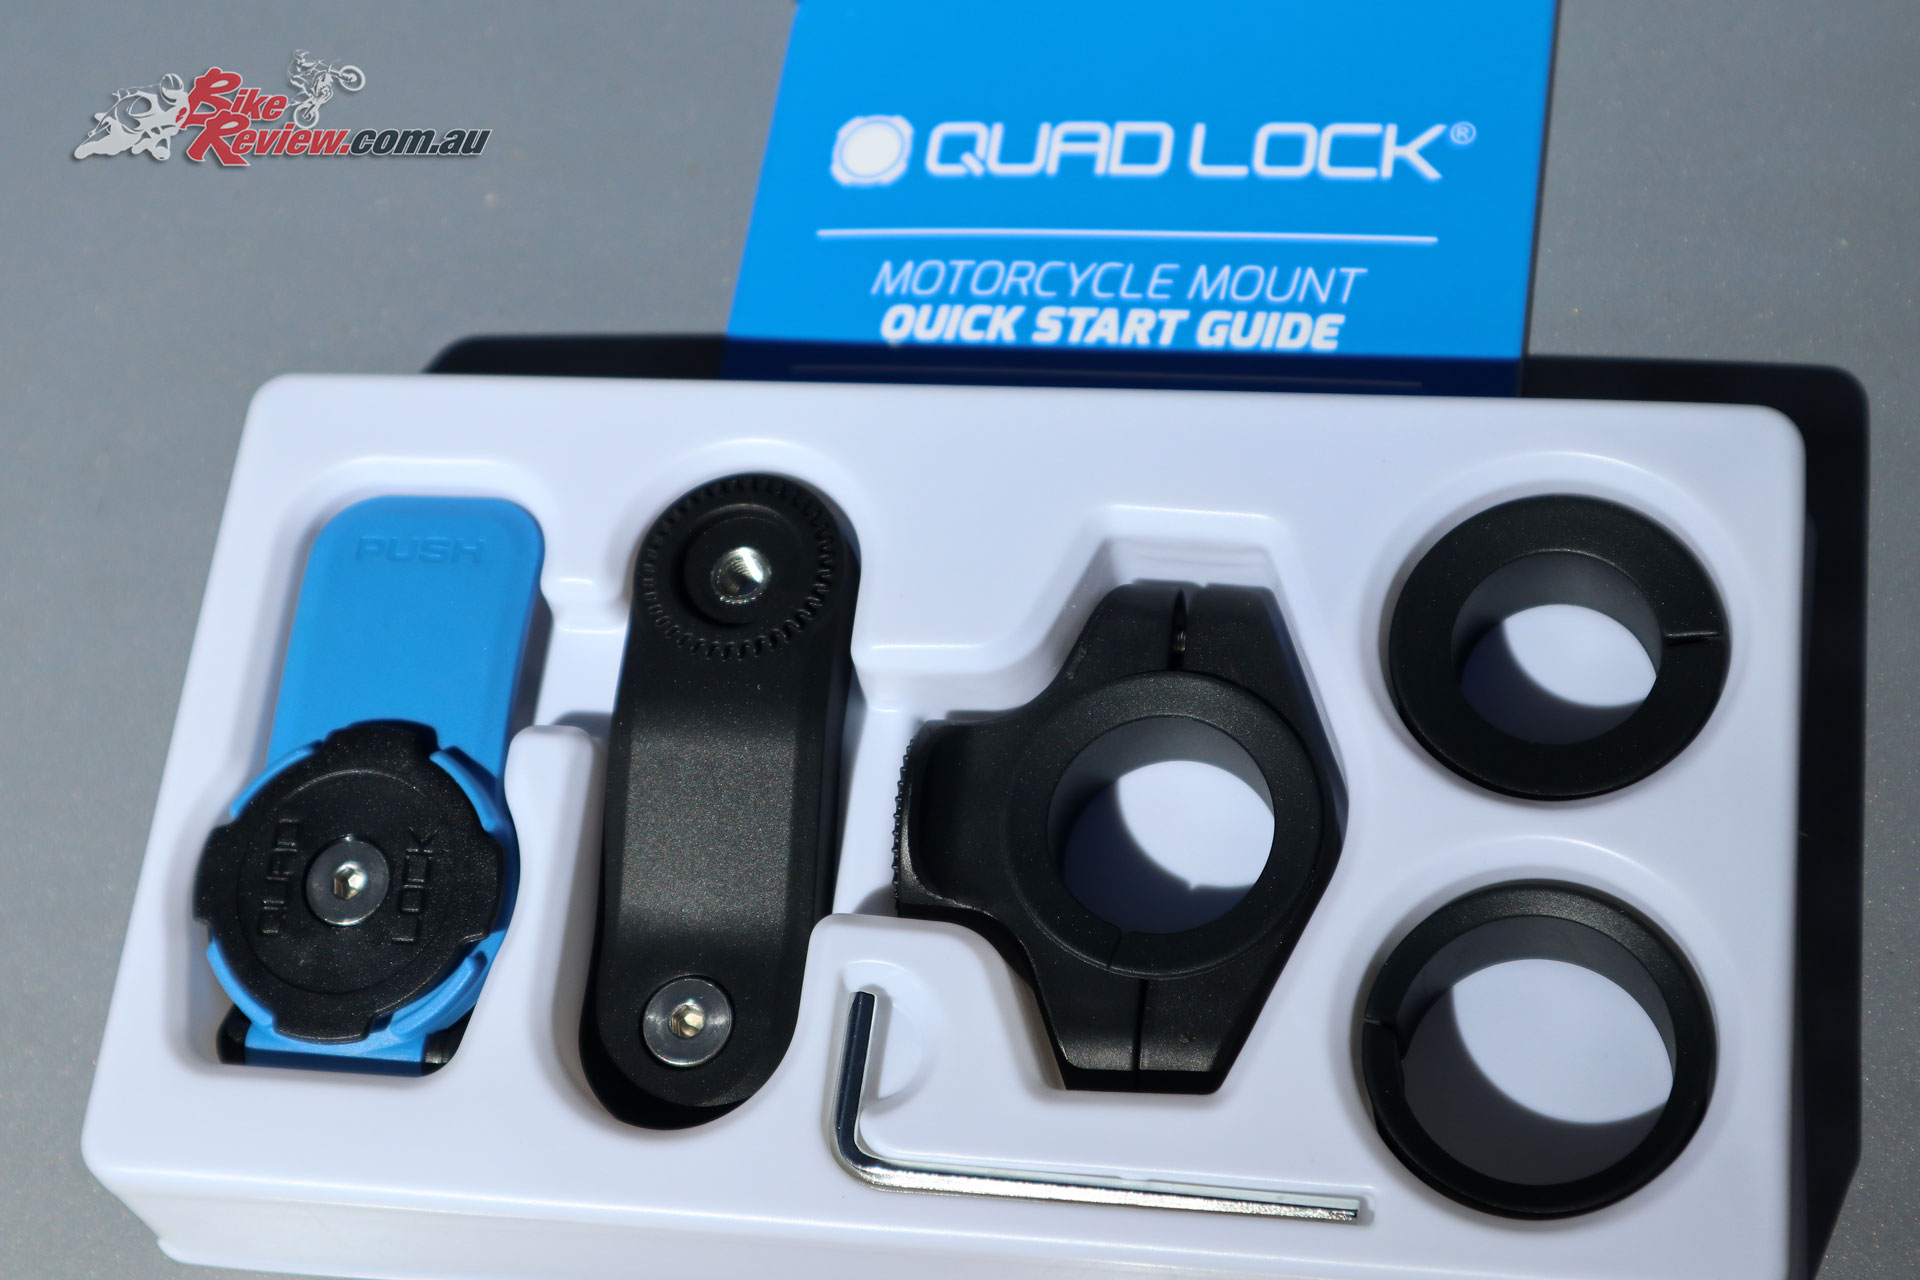 What's in the Quad Lock box